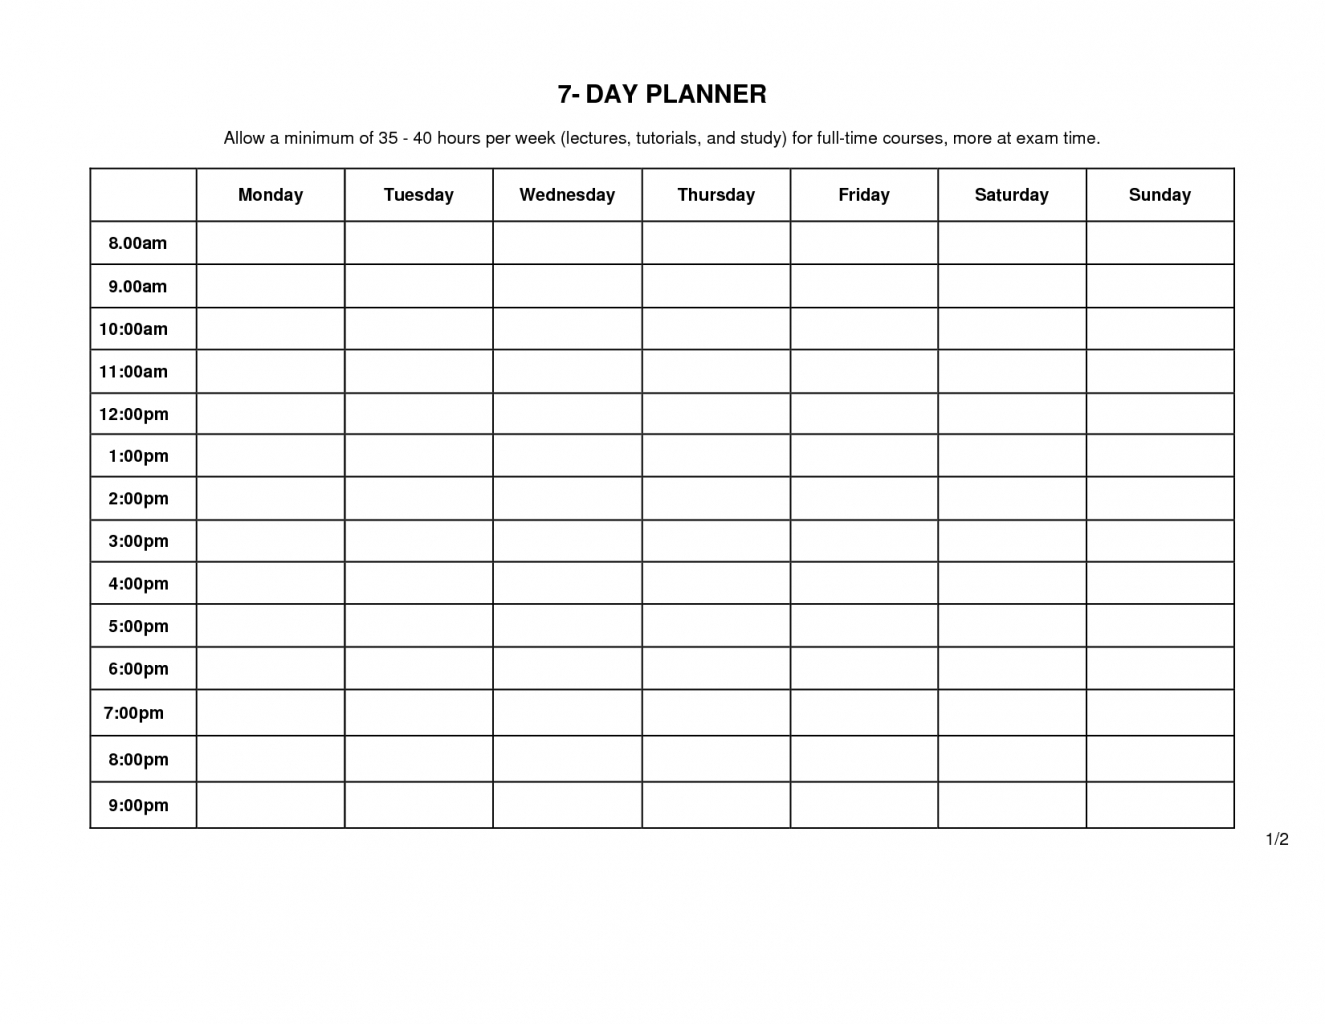 Monday To Friday Timetable Template | Template Calendar Printable inside Printable Weekly Schedule Monday Through Friday